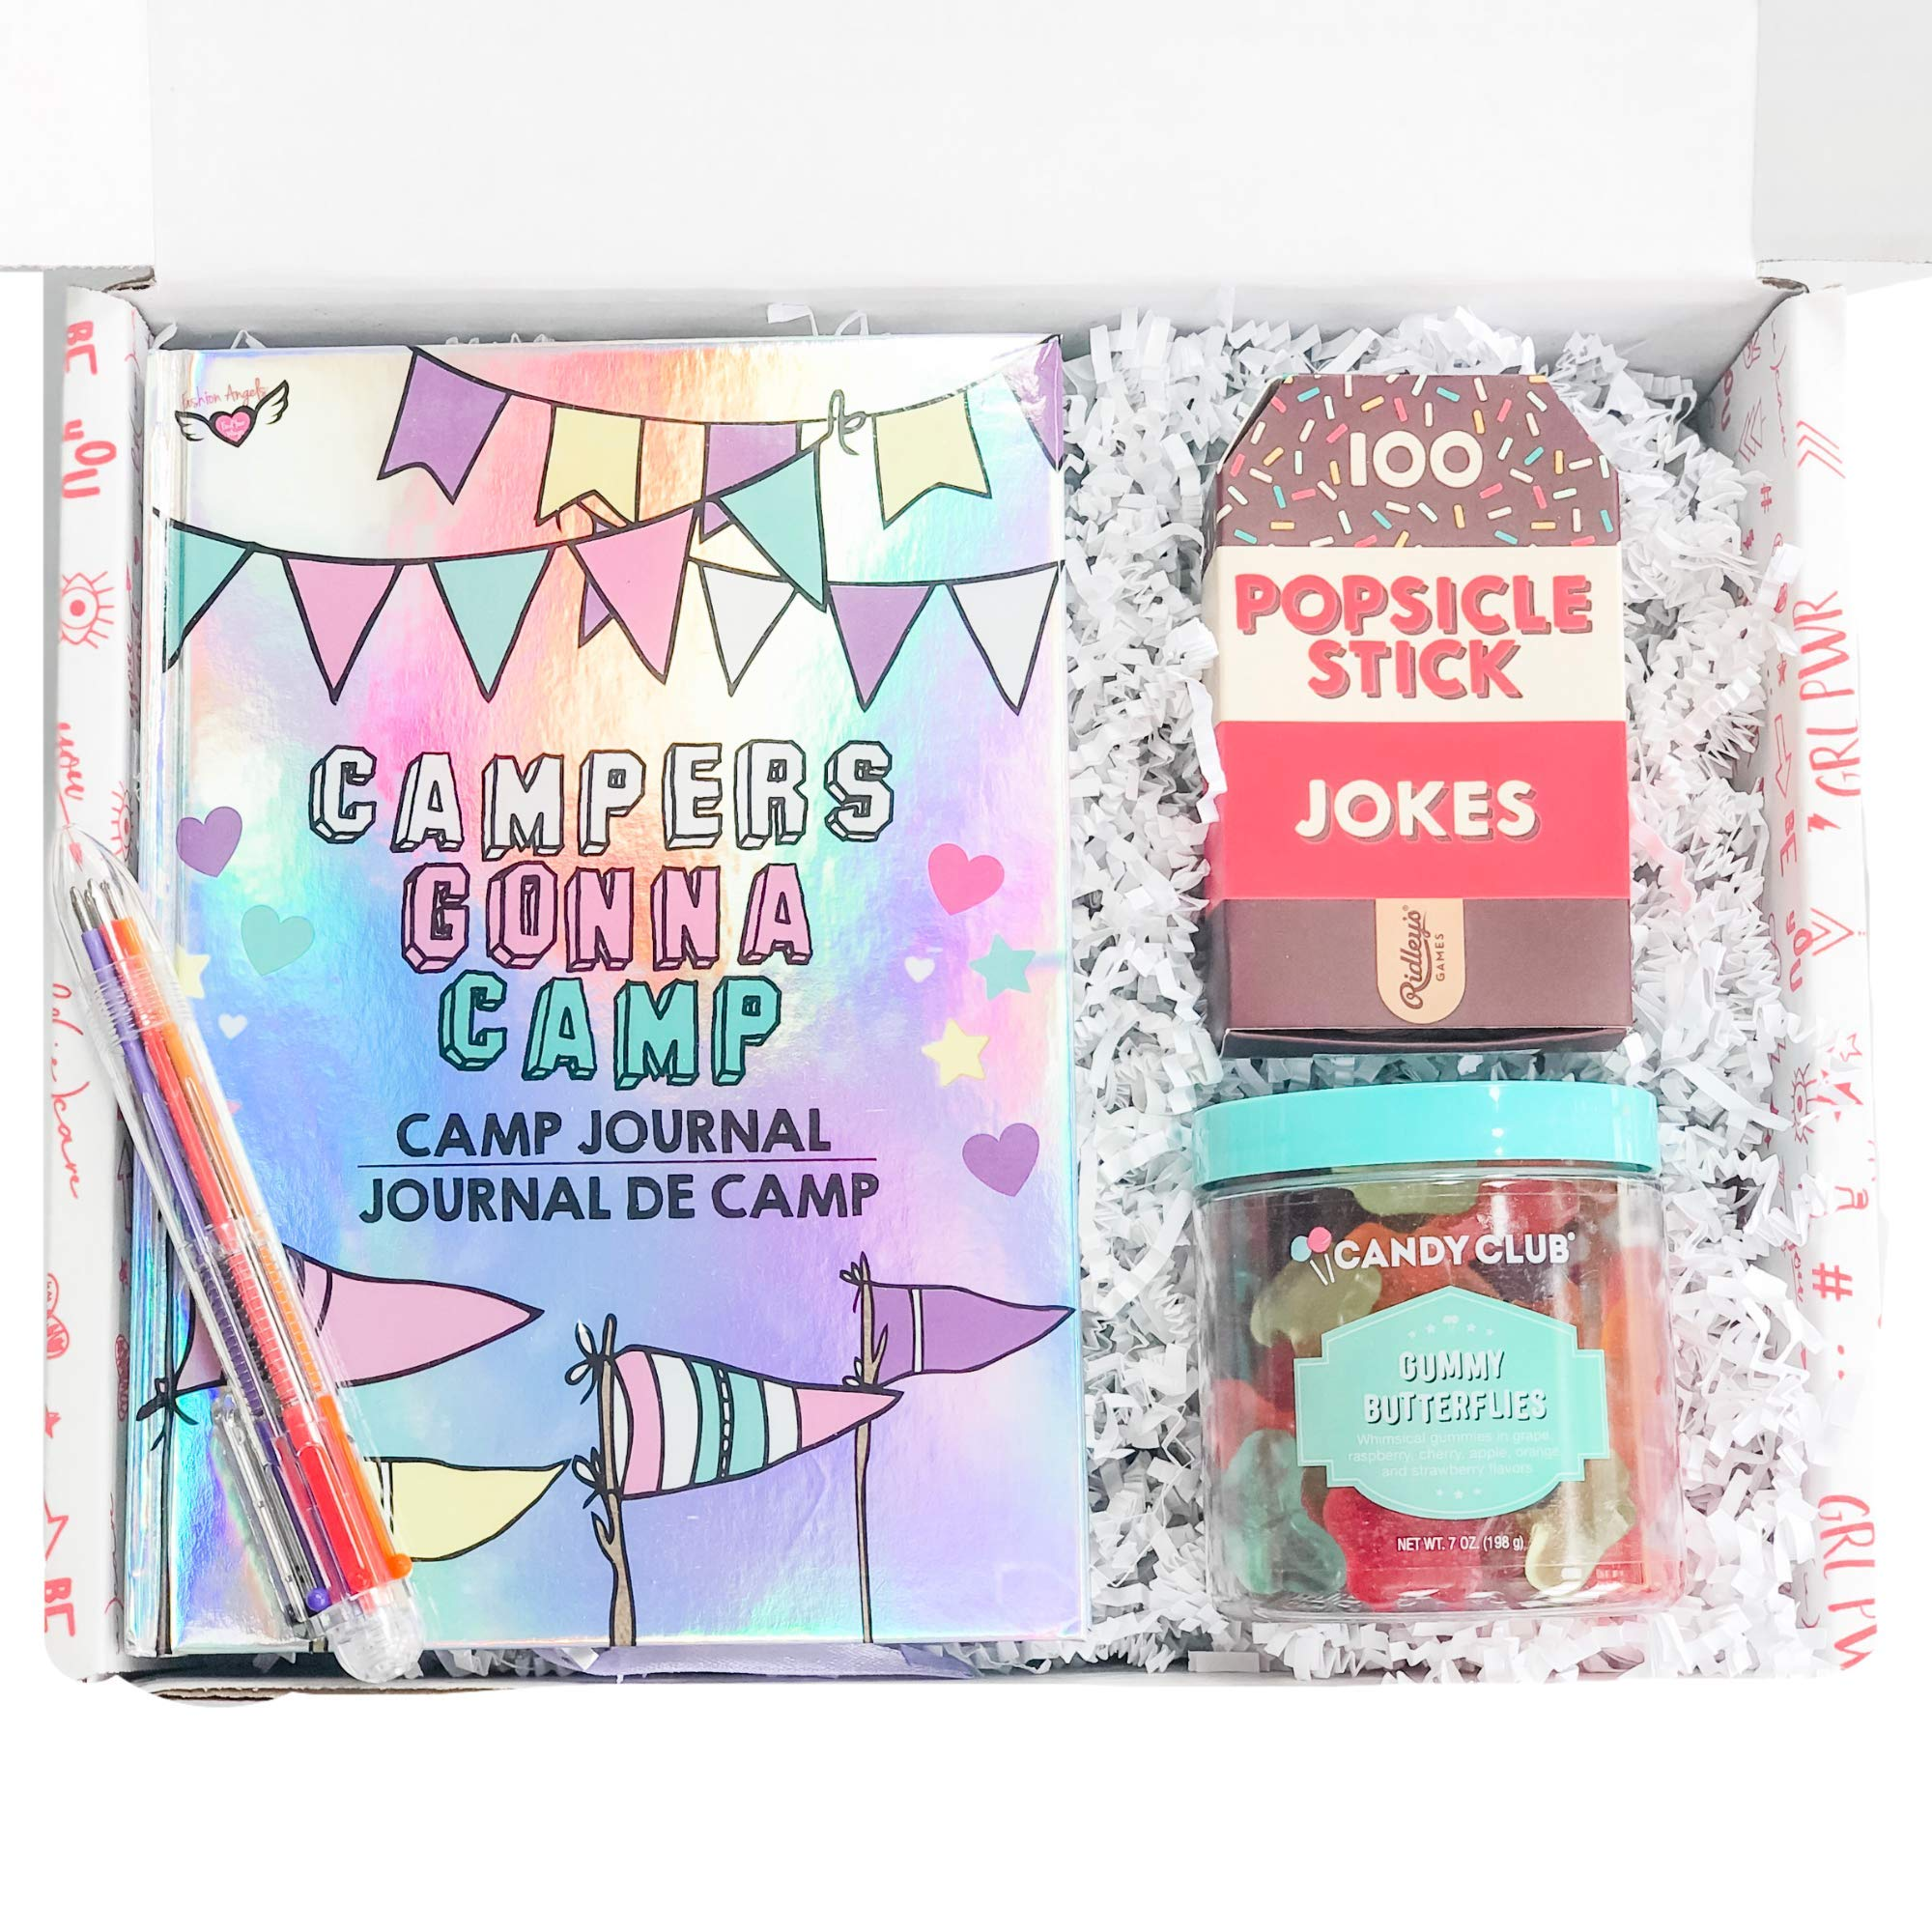 STRONG self(ie) Happy Camper Summer Camp Care Package for Girls with Journal, Multicolor Pen, Ice Breaker Jokes and Butterfly Gummy Candies - A Sleep Away Camp Gift Box